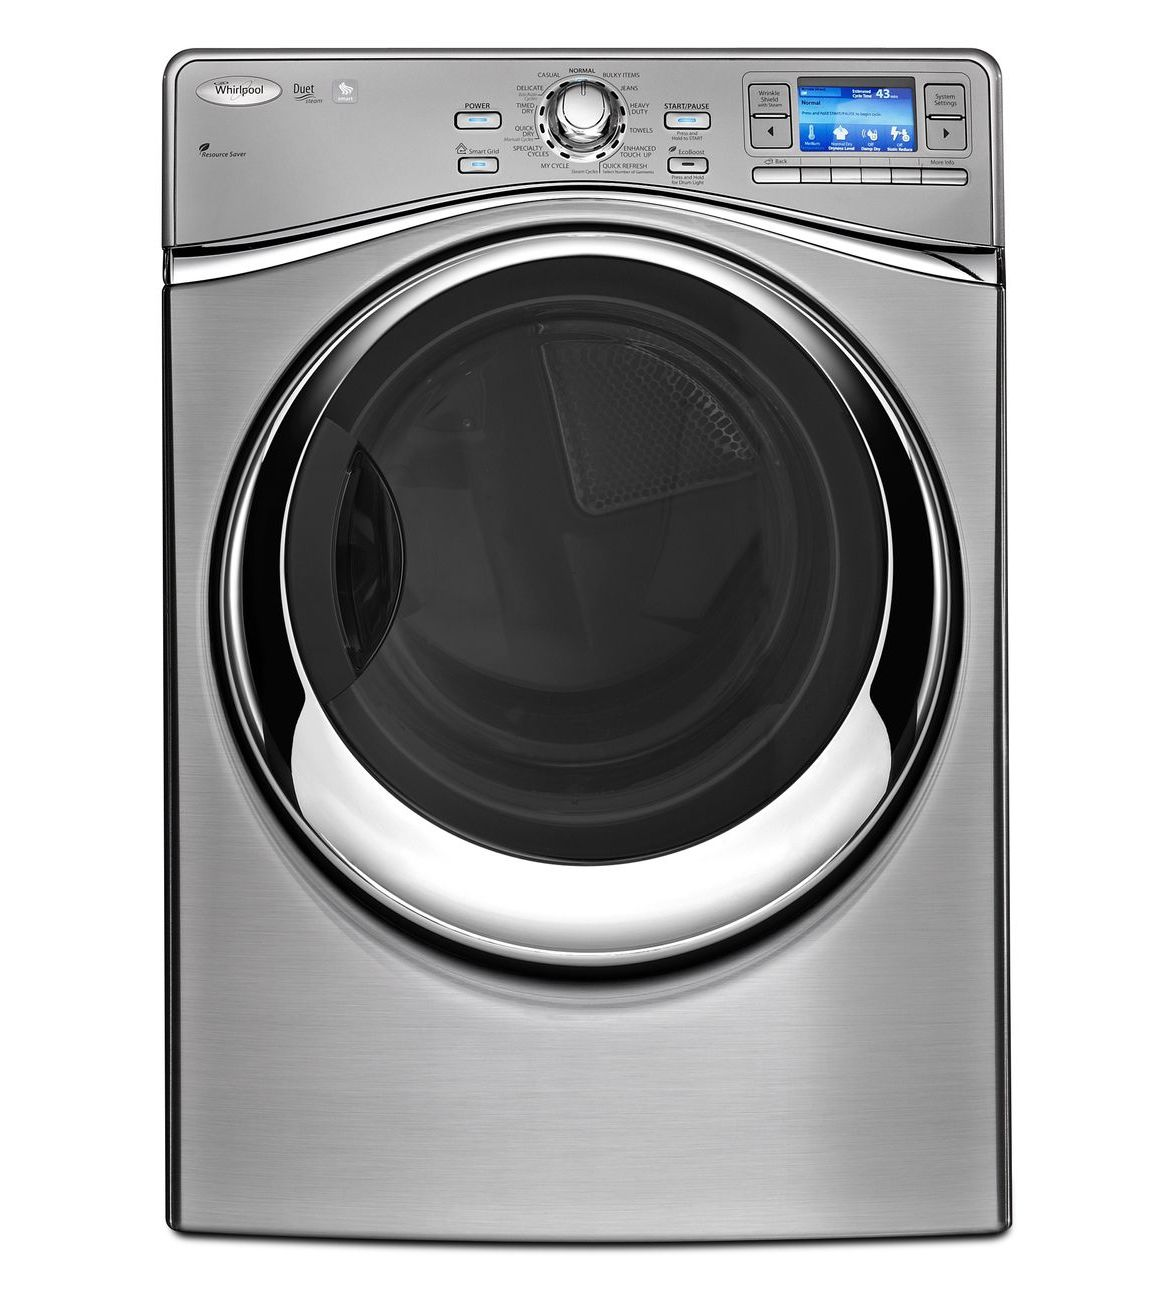 Dryer Buying Guide Appliances Connection Washing Machine Parts Diagram Additionally Whirlpool Duet Washer Wel98hebu Smart Front Load